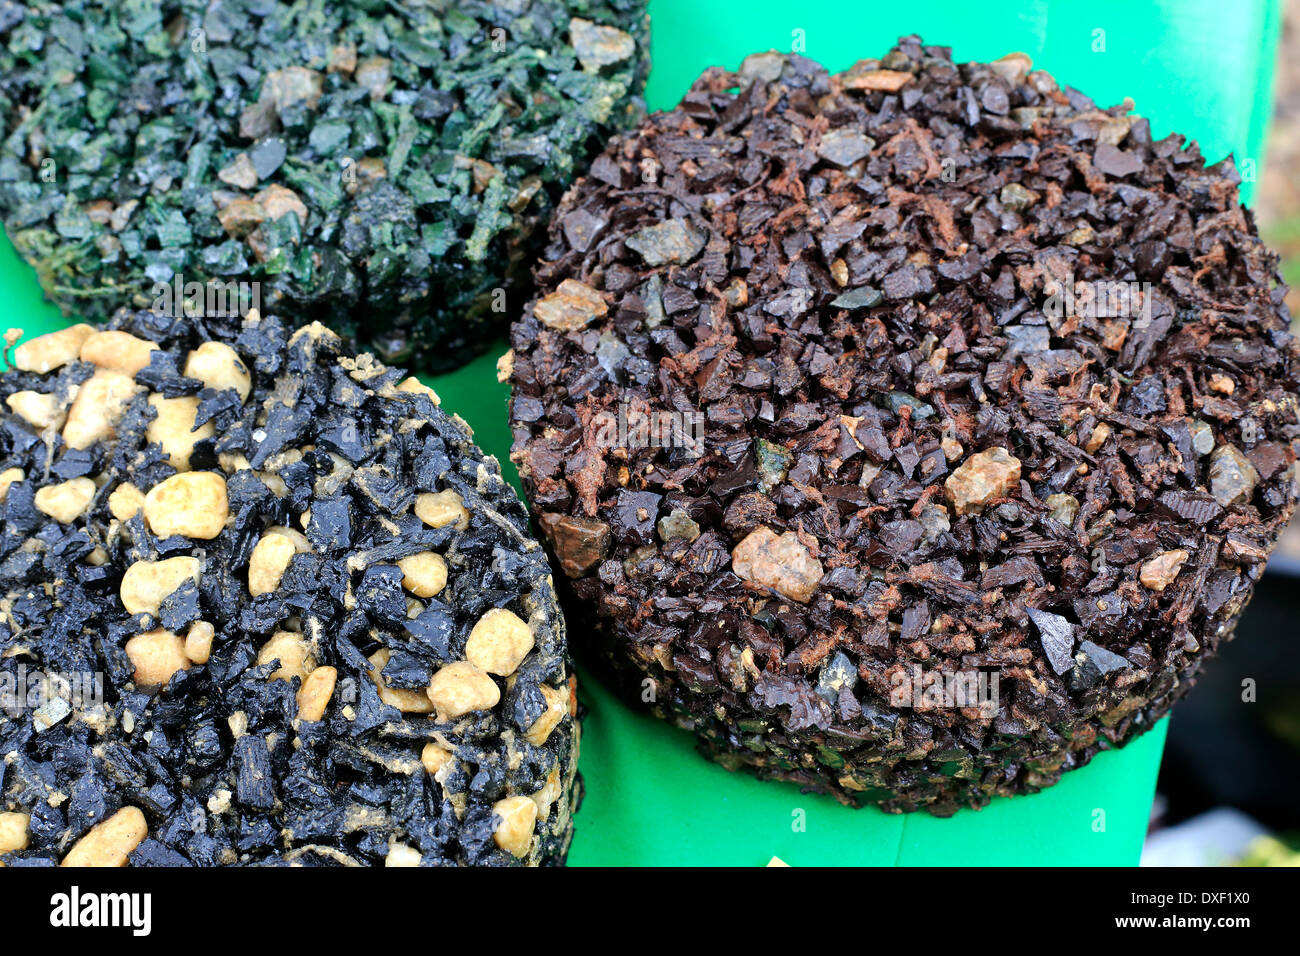 Mulch Or Surface And Pavers Made From Recycled Rubber